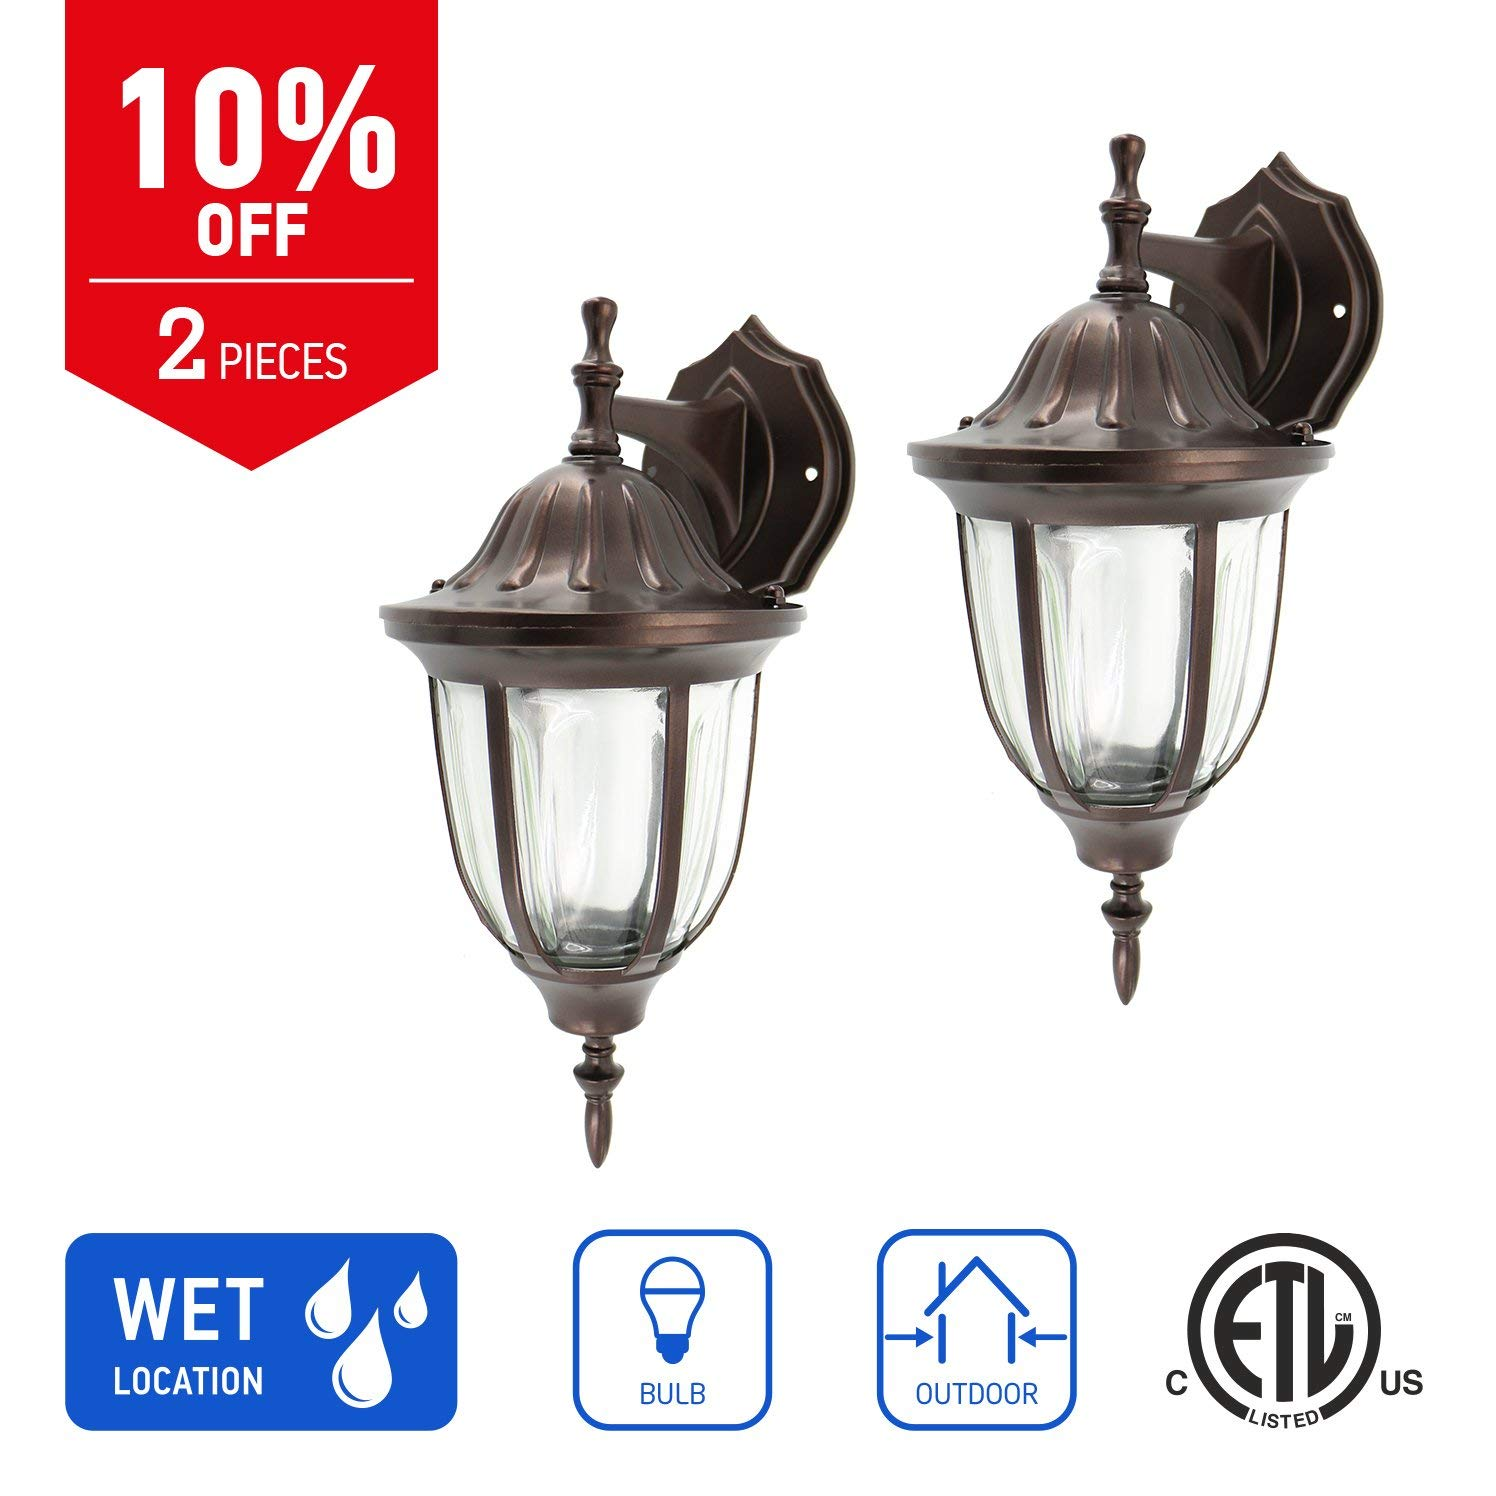 IN HOME 1-Light Outdoor Exterior Wall Down Lantern, Traditional Porch Patio Lighting Fixture L03 with One E26 Base, Water-Proof, Bronze Cast Aluminum Housing, Clear Glass Panels, (2 Pack) ETL Listed